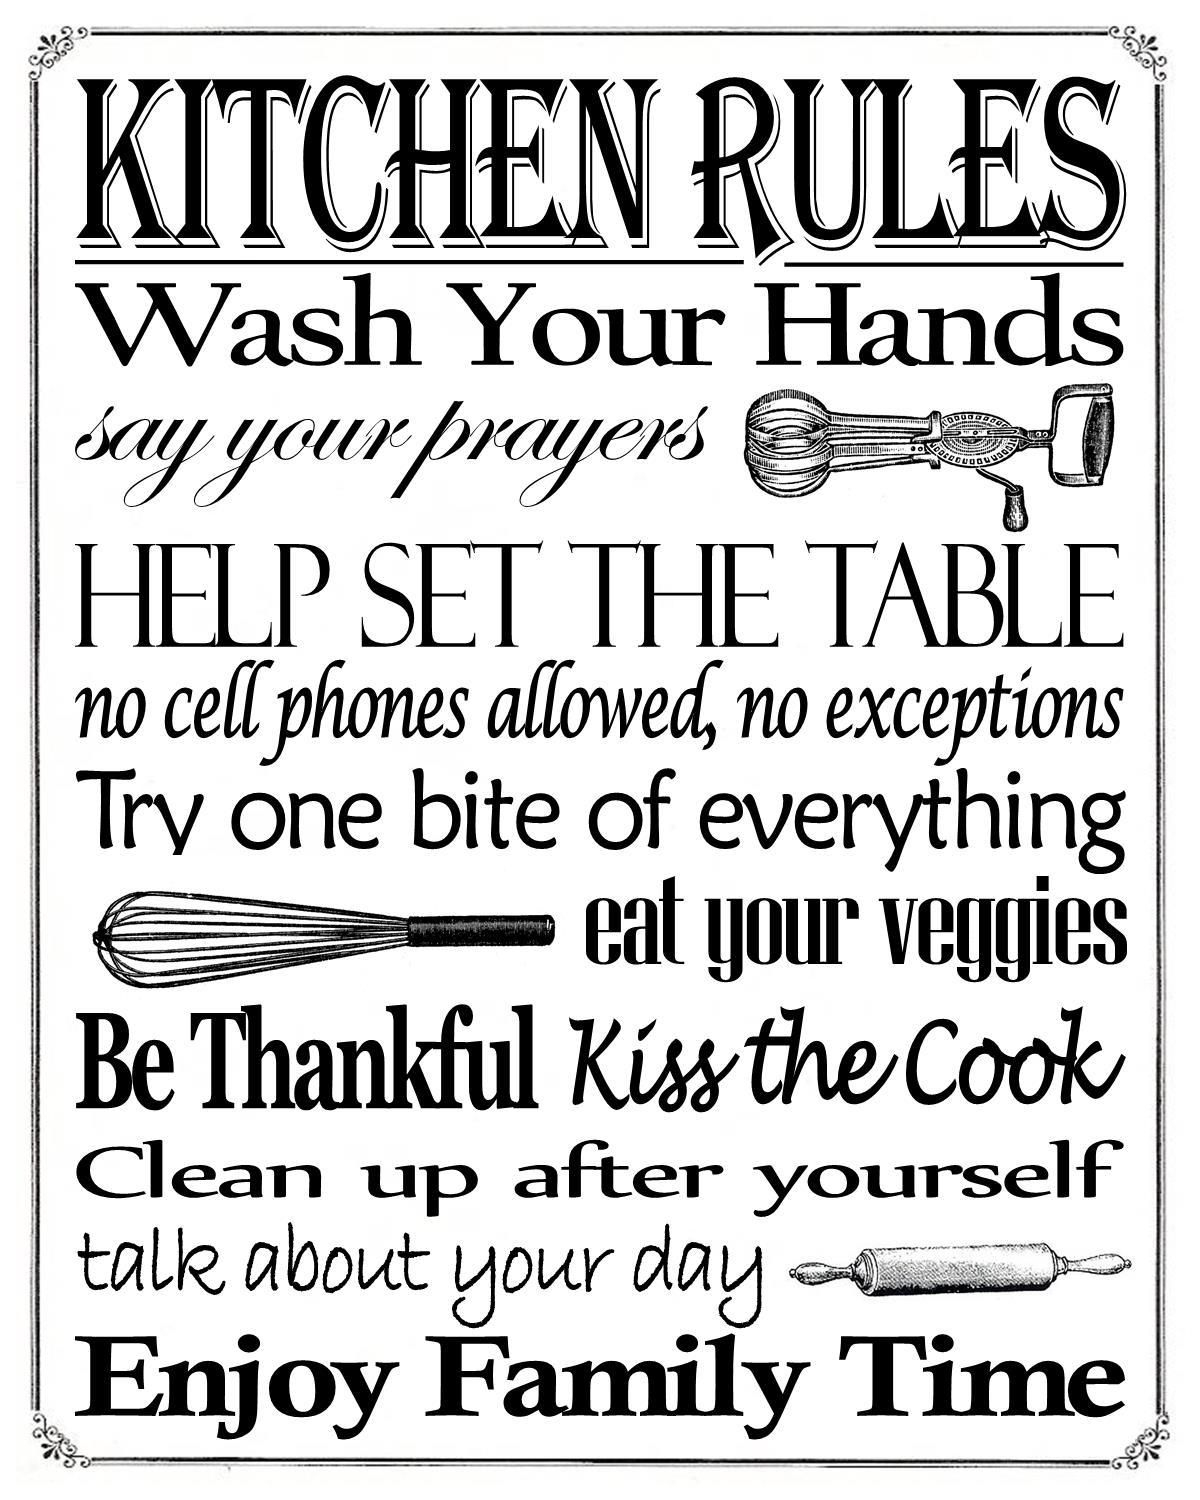 """Free Printable """"kitchen Rules"""" 8"""" X 10"""" Sign   Misc In 2019 - Free Wash Your Hands Signs Printable"""